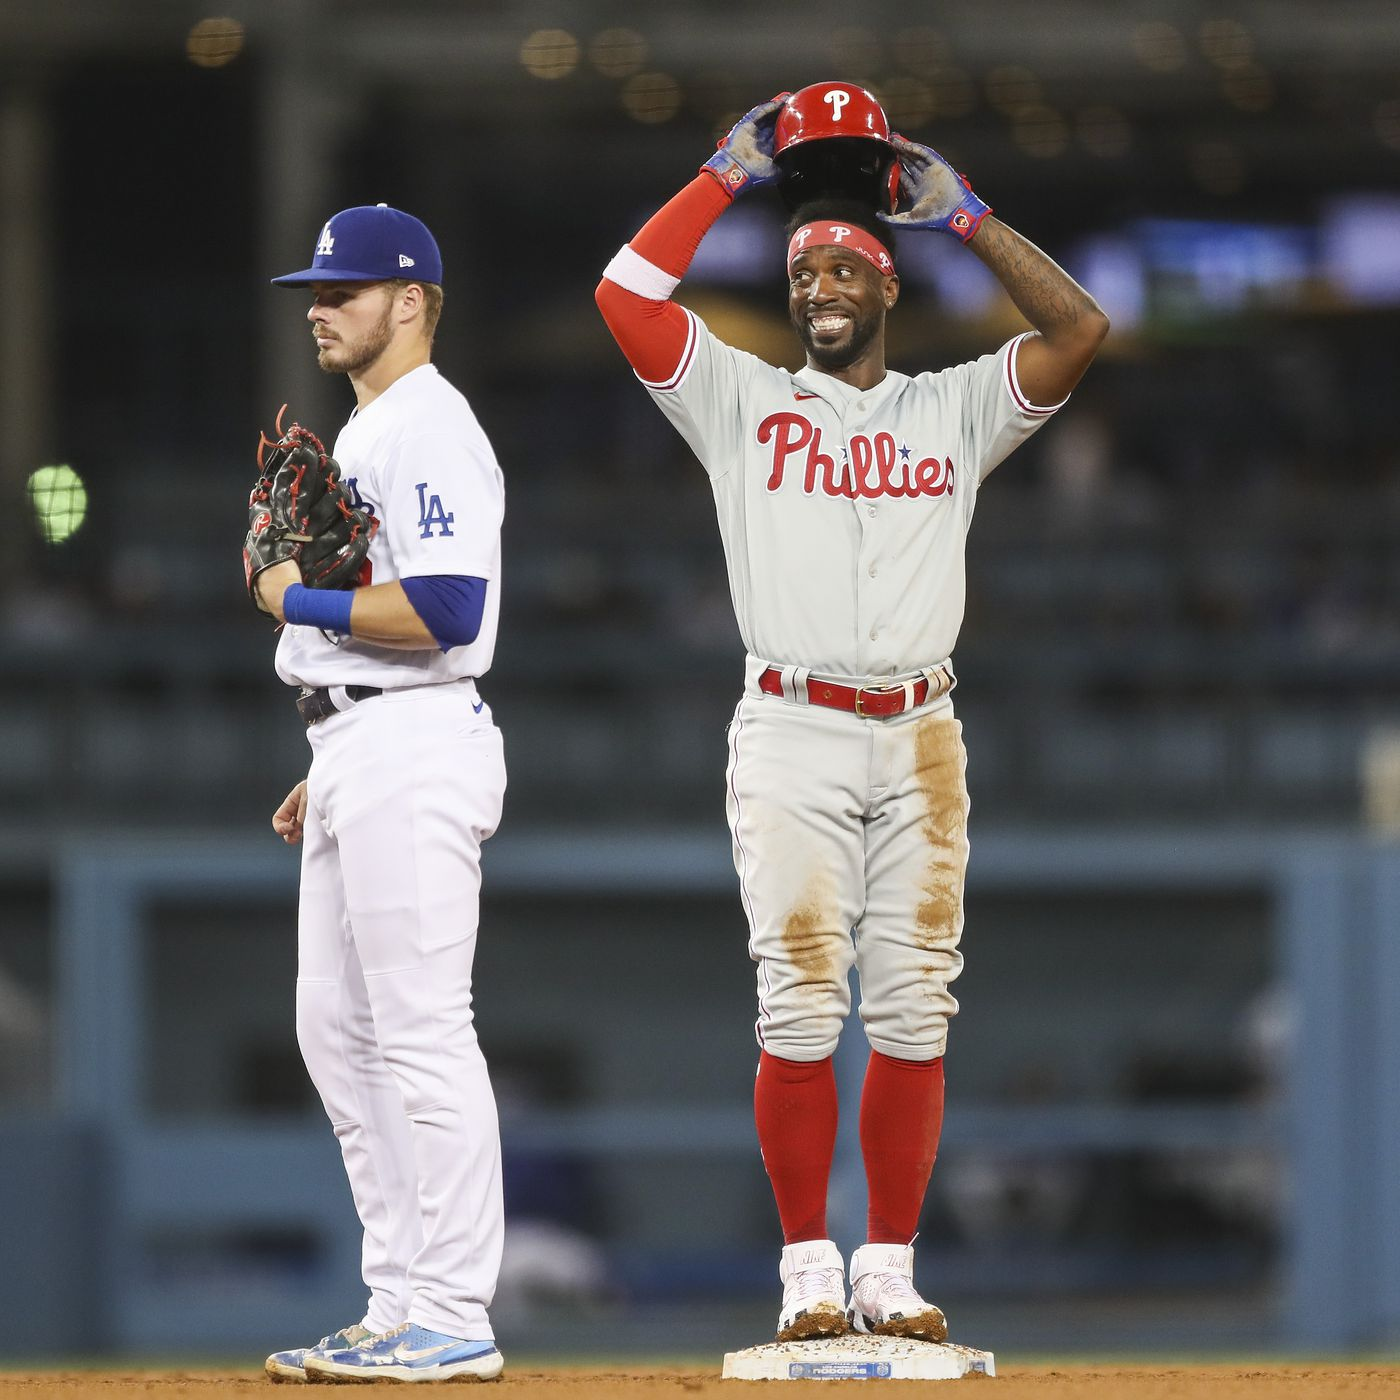 Miscake - Dodgers 3, Phillies 1 - The Good Phight